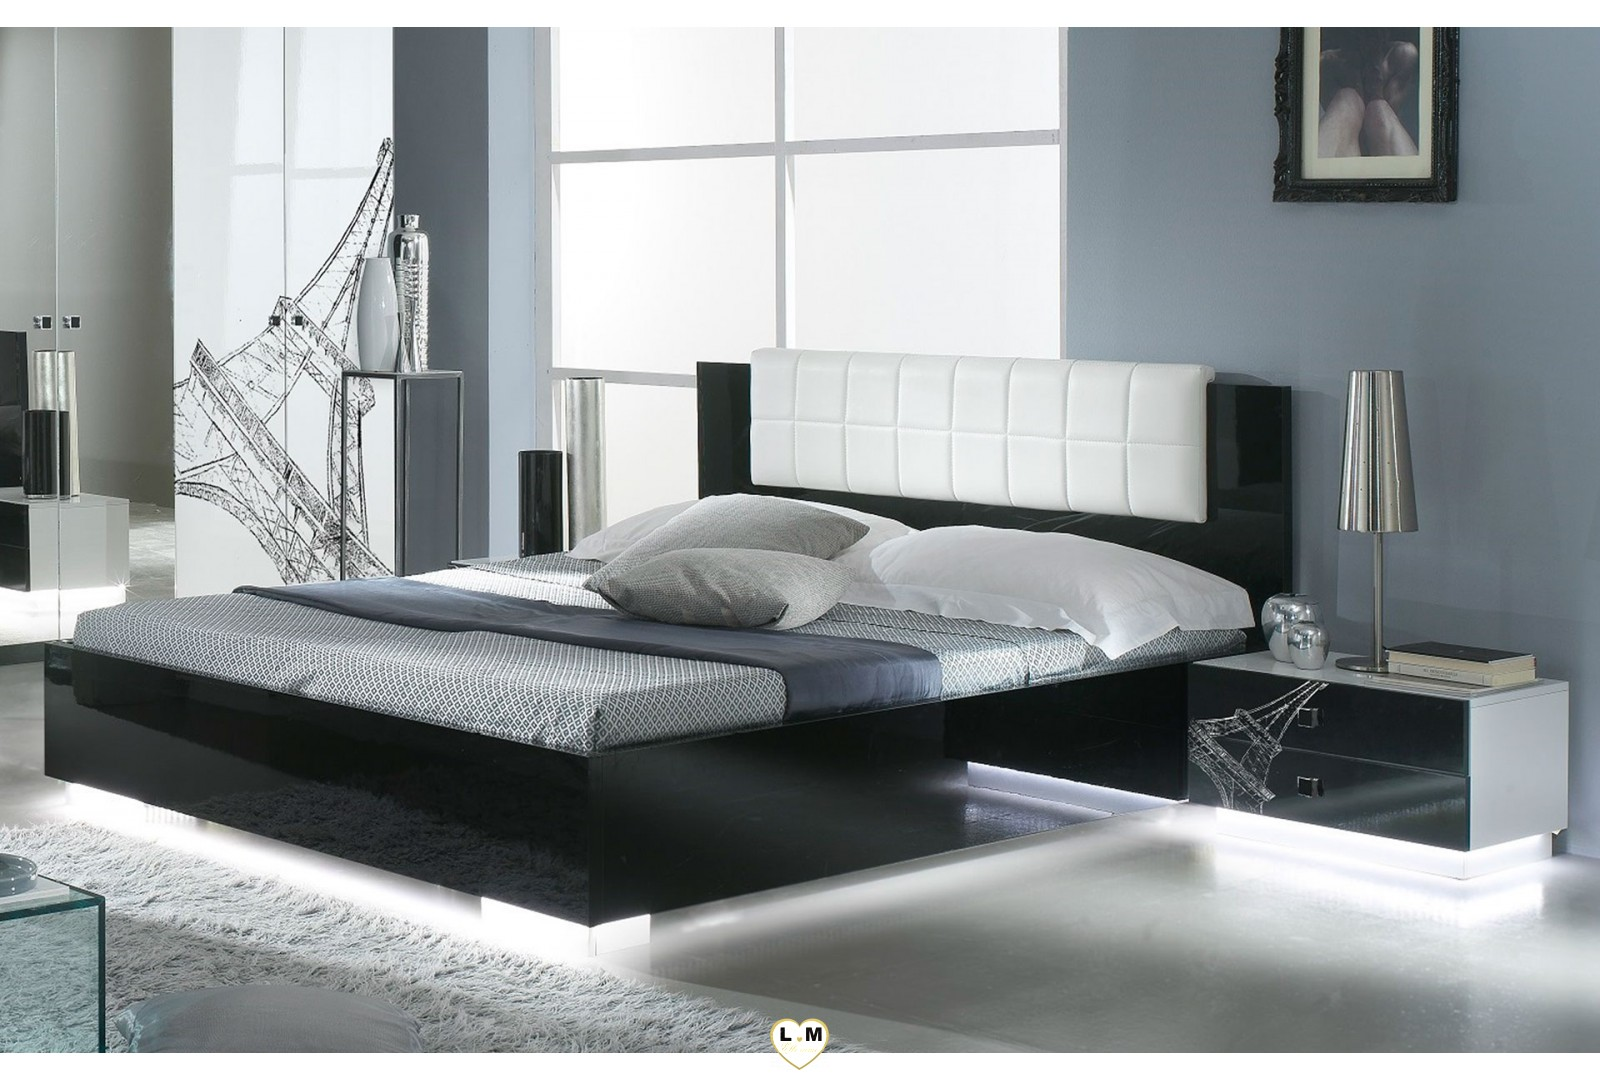 viola laque blanc et noir l 39 ensemble chambre a coucher lignemeuble com. Black Bedroom Furniture Sets. Home Design Ideas